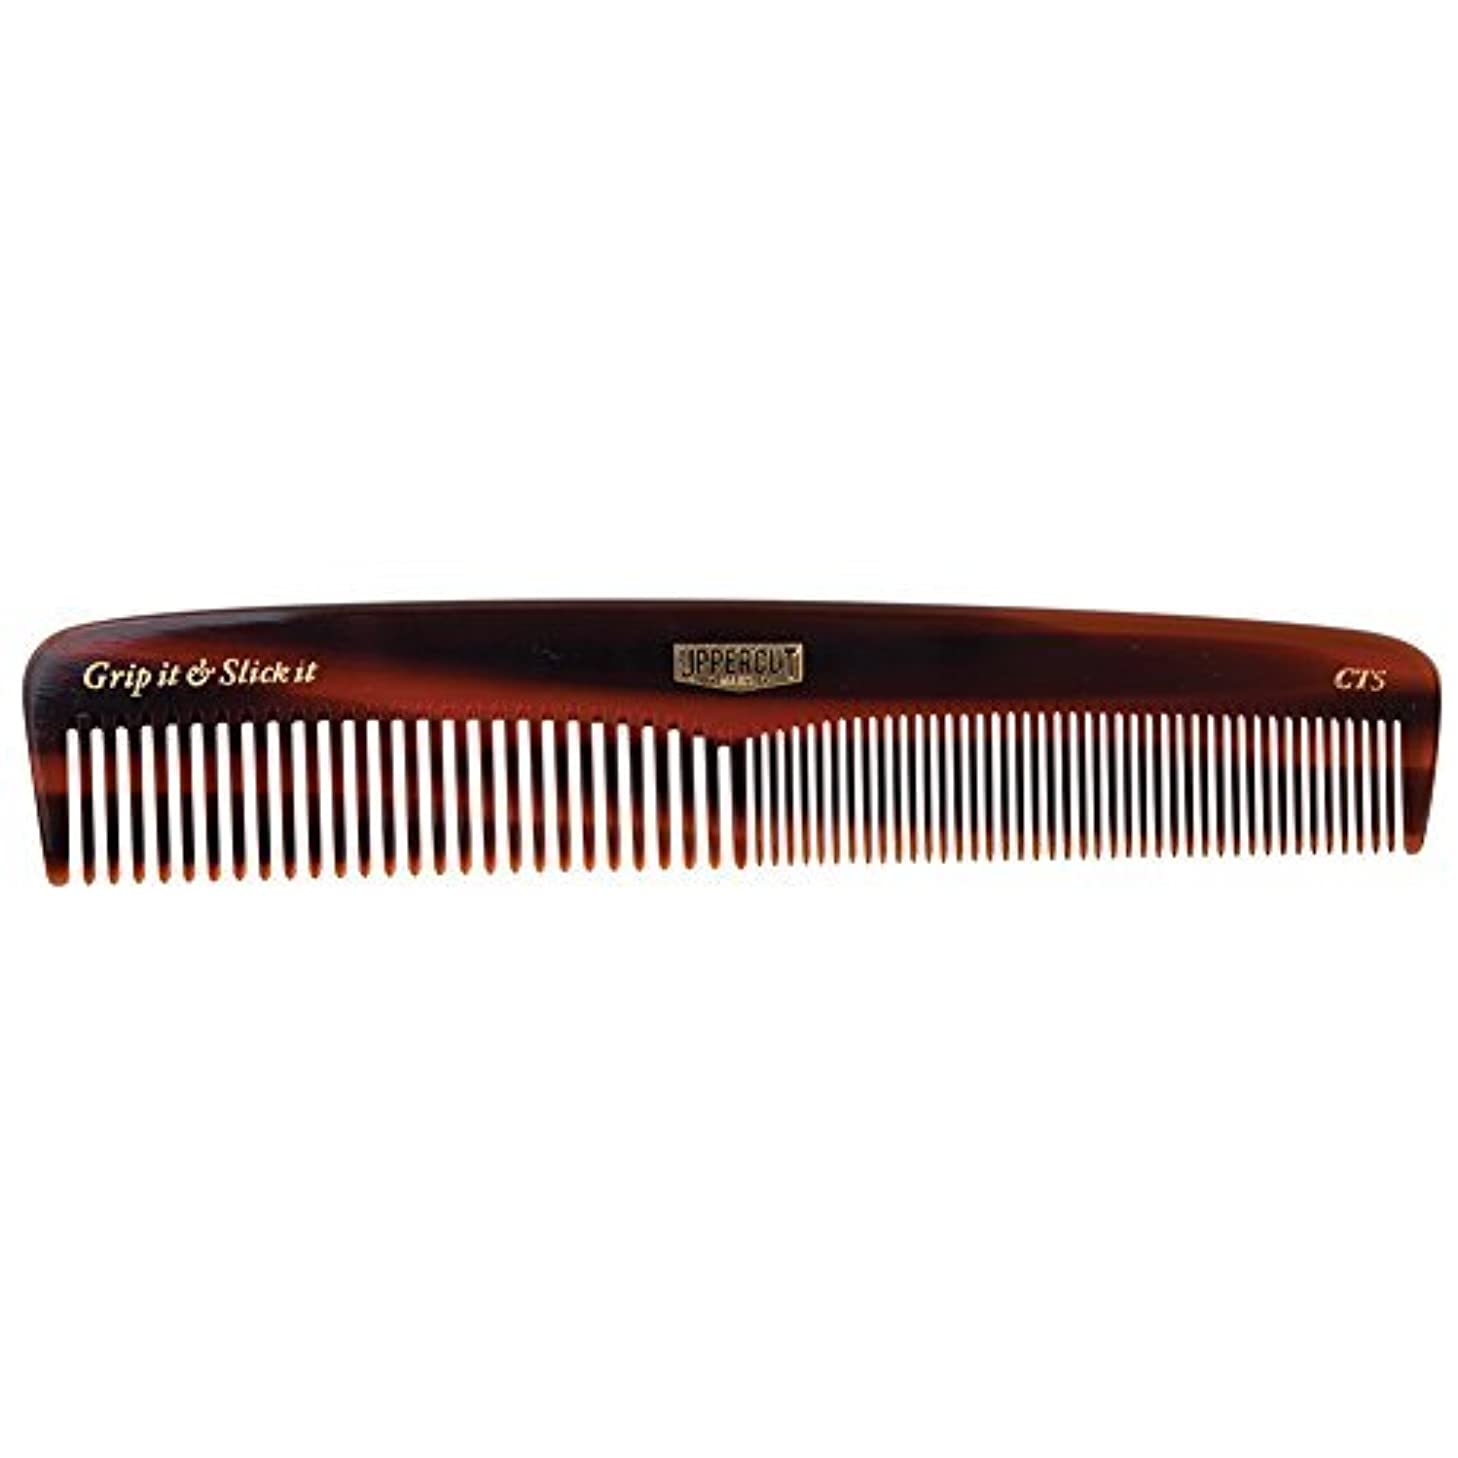 Uppercut Deluxe CT5 Tortoise Shell Comb - Easy to Use, Pocket Sized - Grip It & Slick It [並行輸入品]